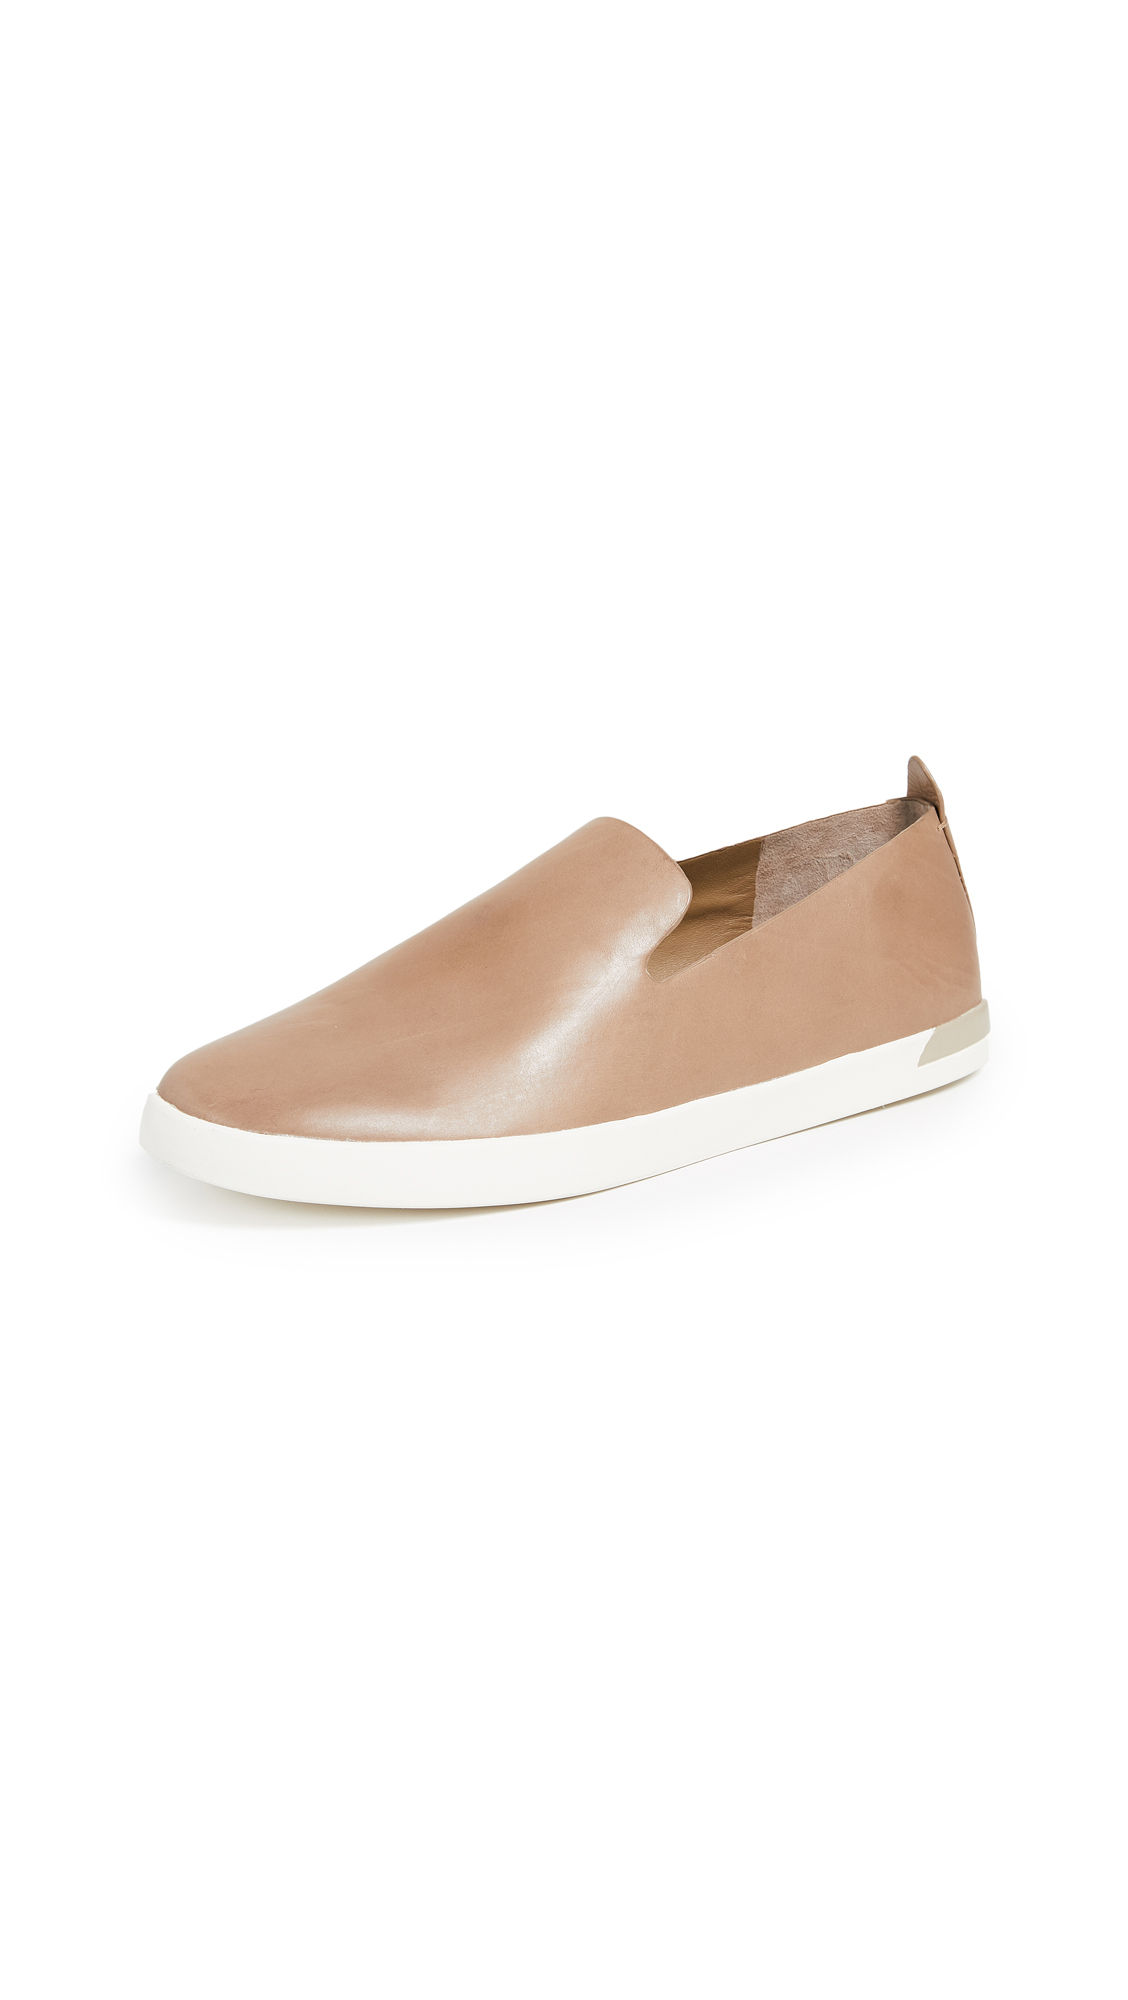 Vince Vero Loafers - Warm Taupe